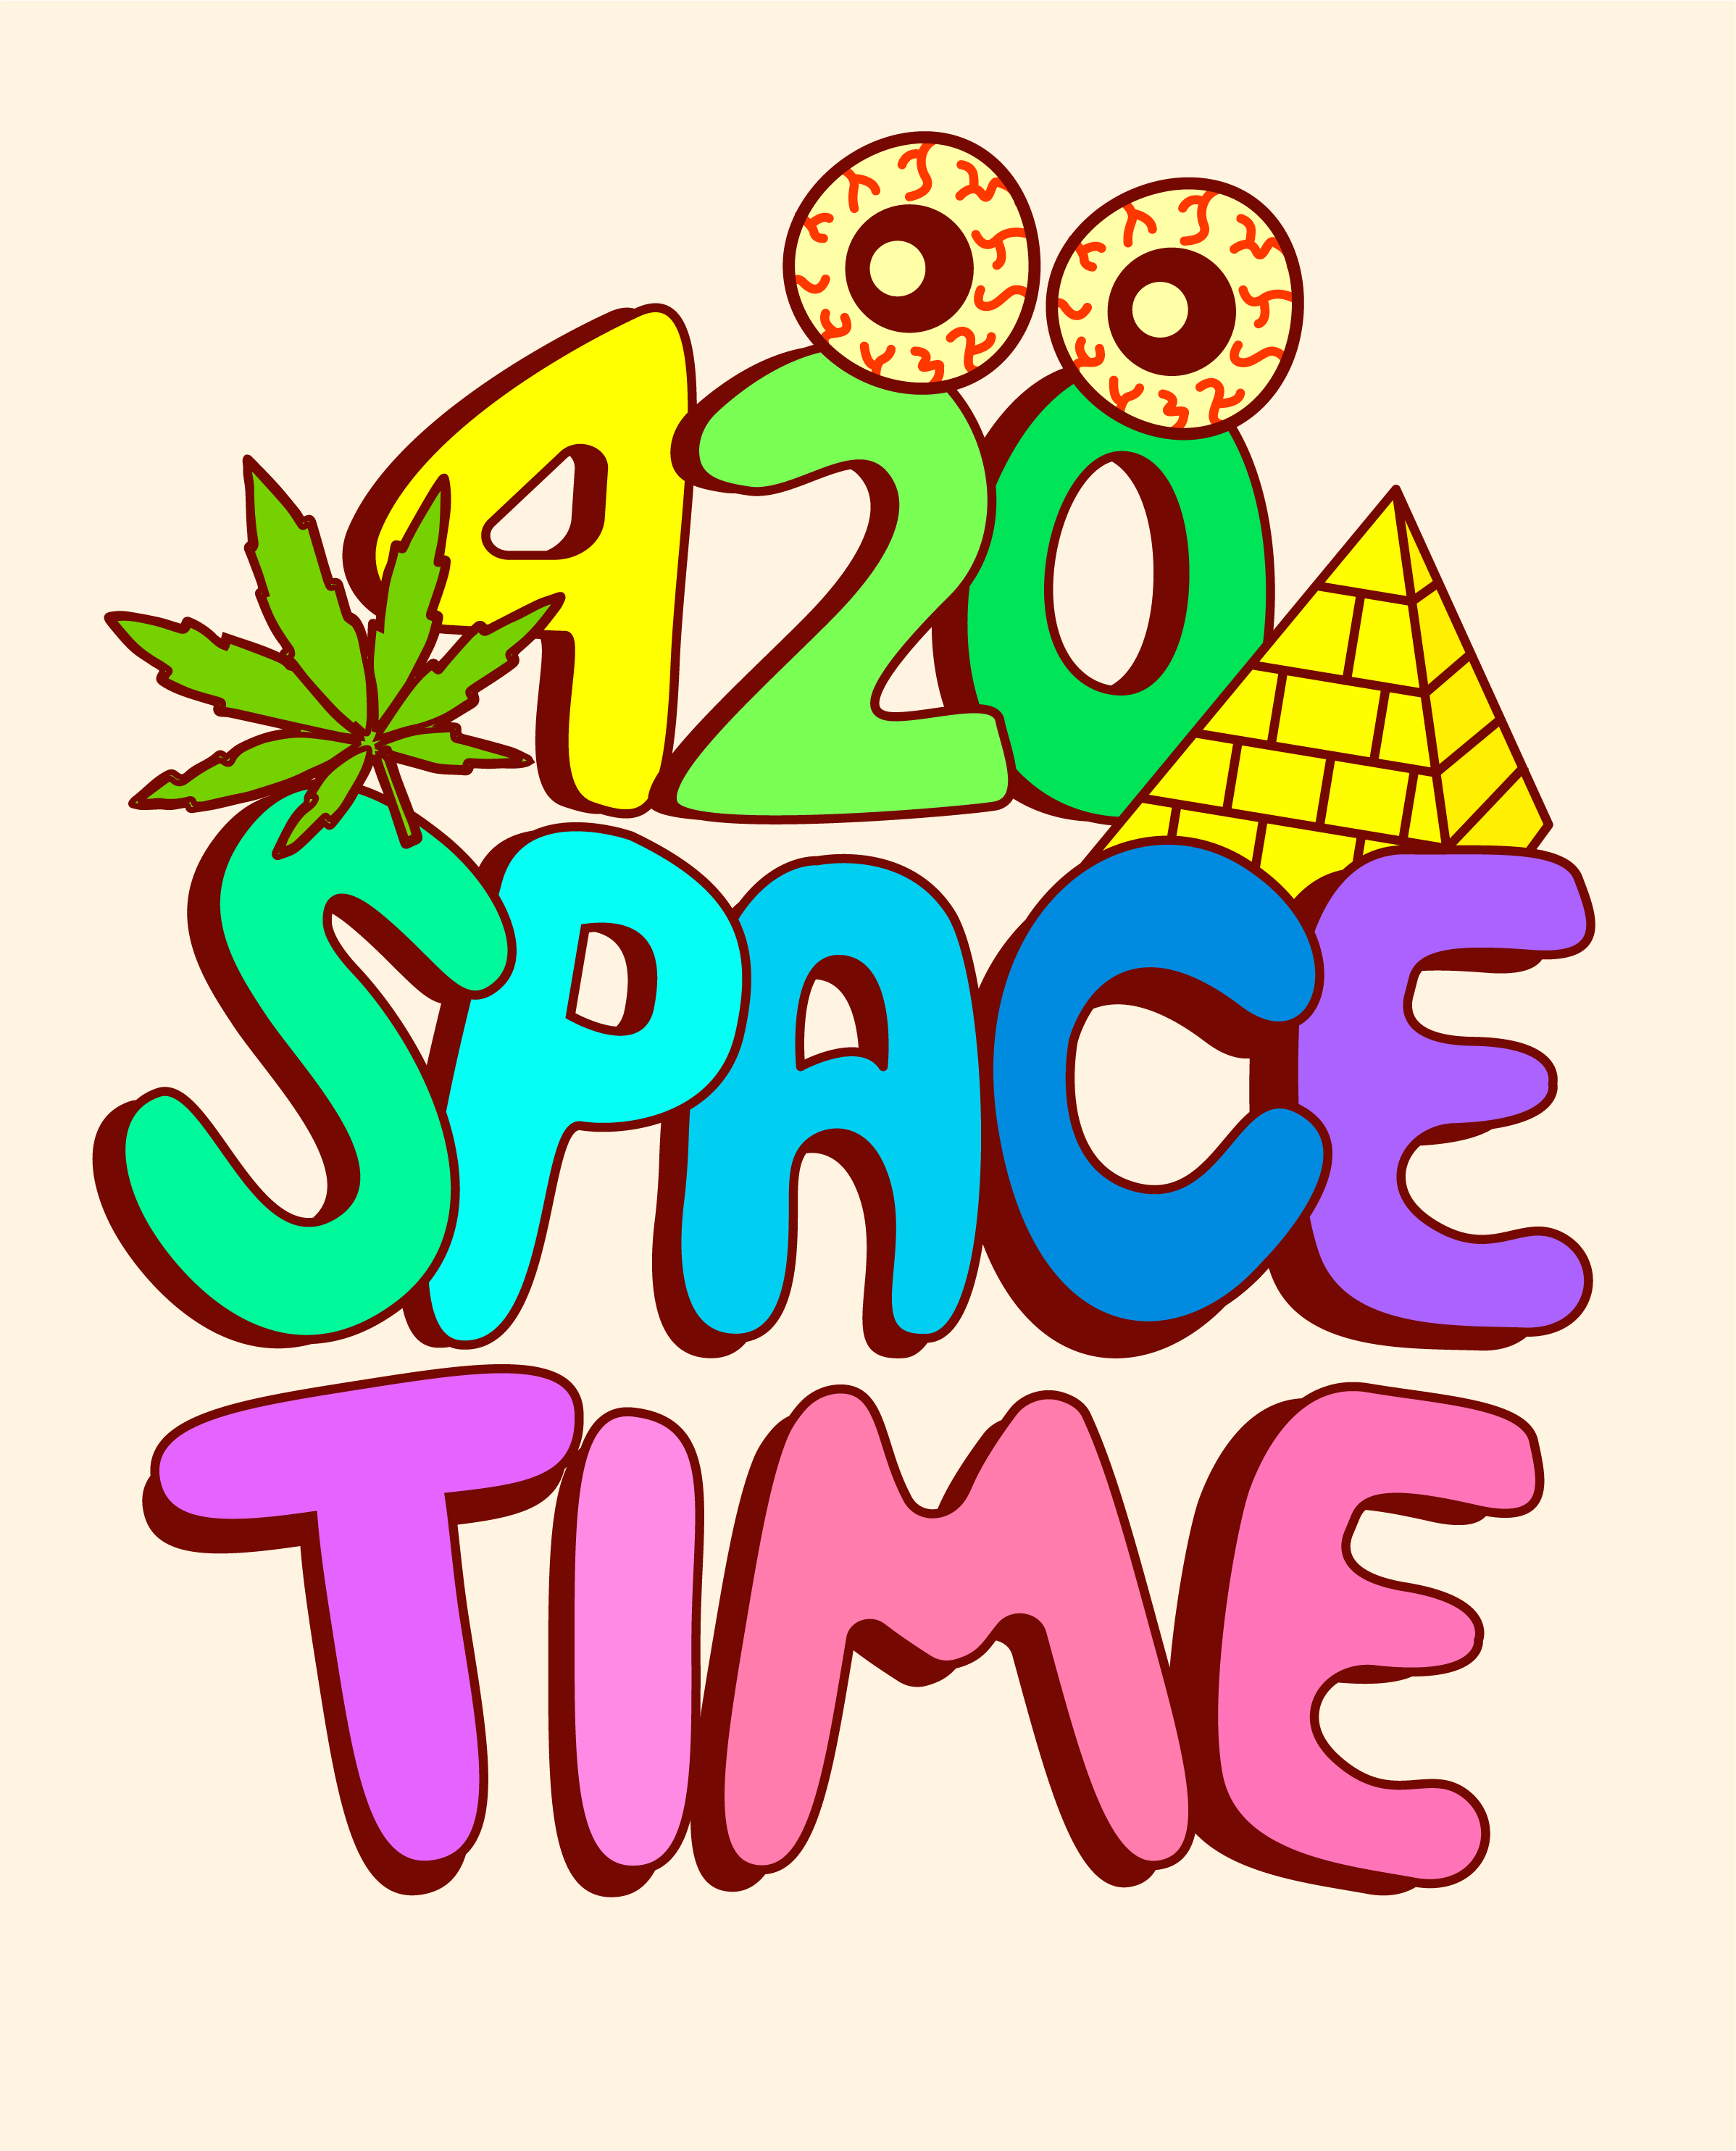 T-SHIRT DESIGN FOR @420SPACETIME